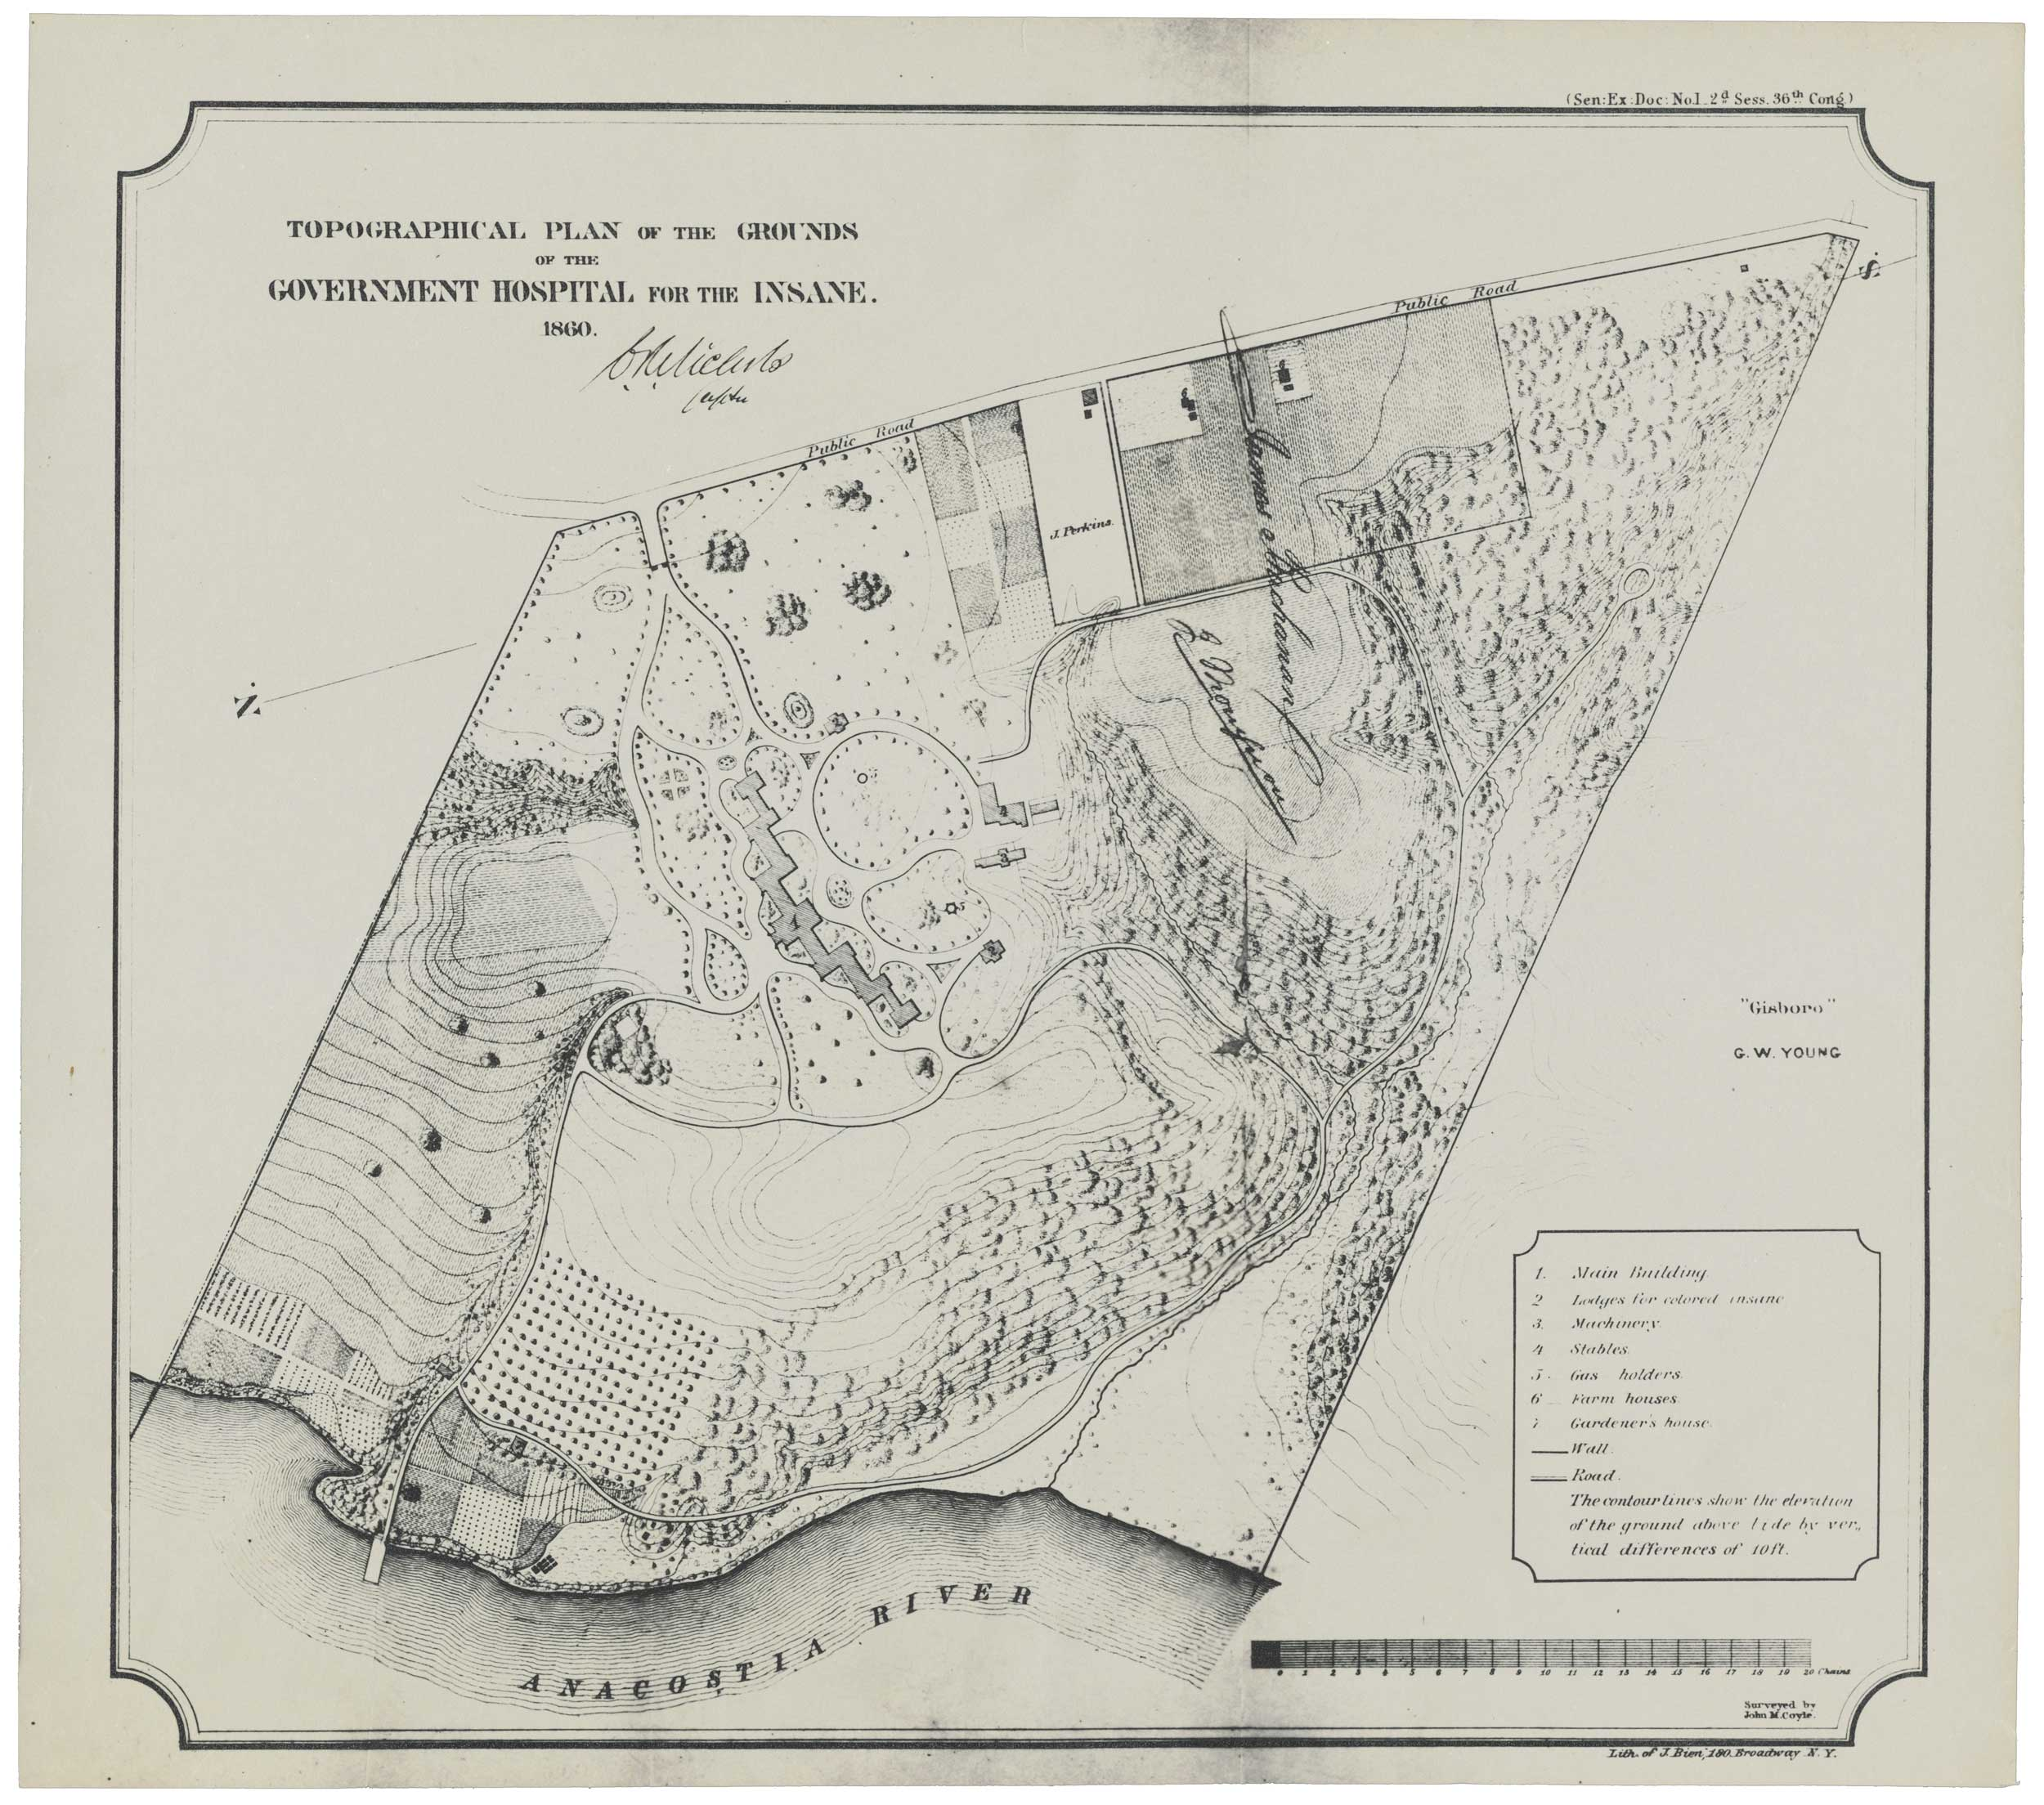 Topographical Plan of the Grounds, from the Annual Report, 1860. Courtesy Library of Congress, American Architectural Foundation Collection